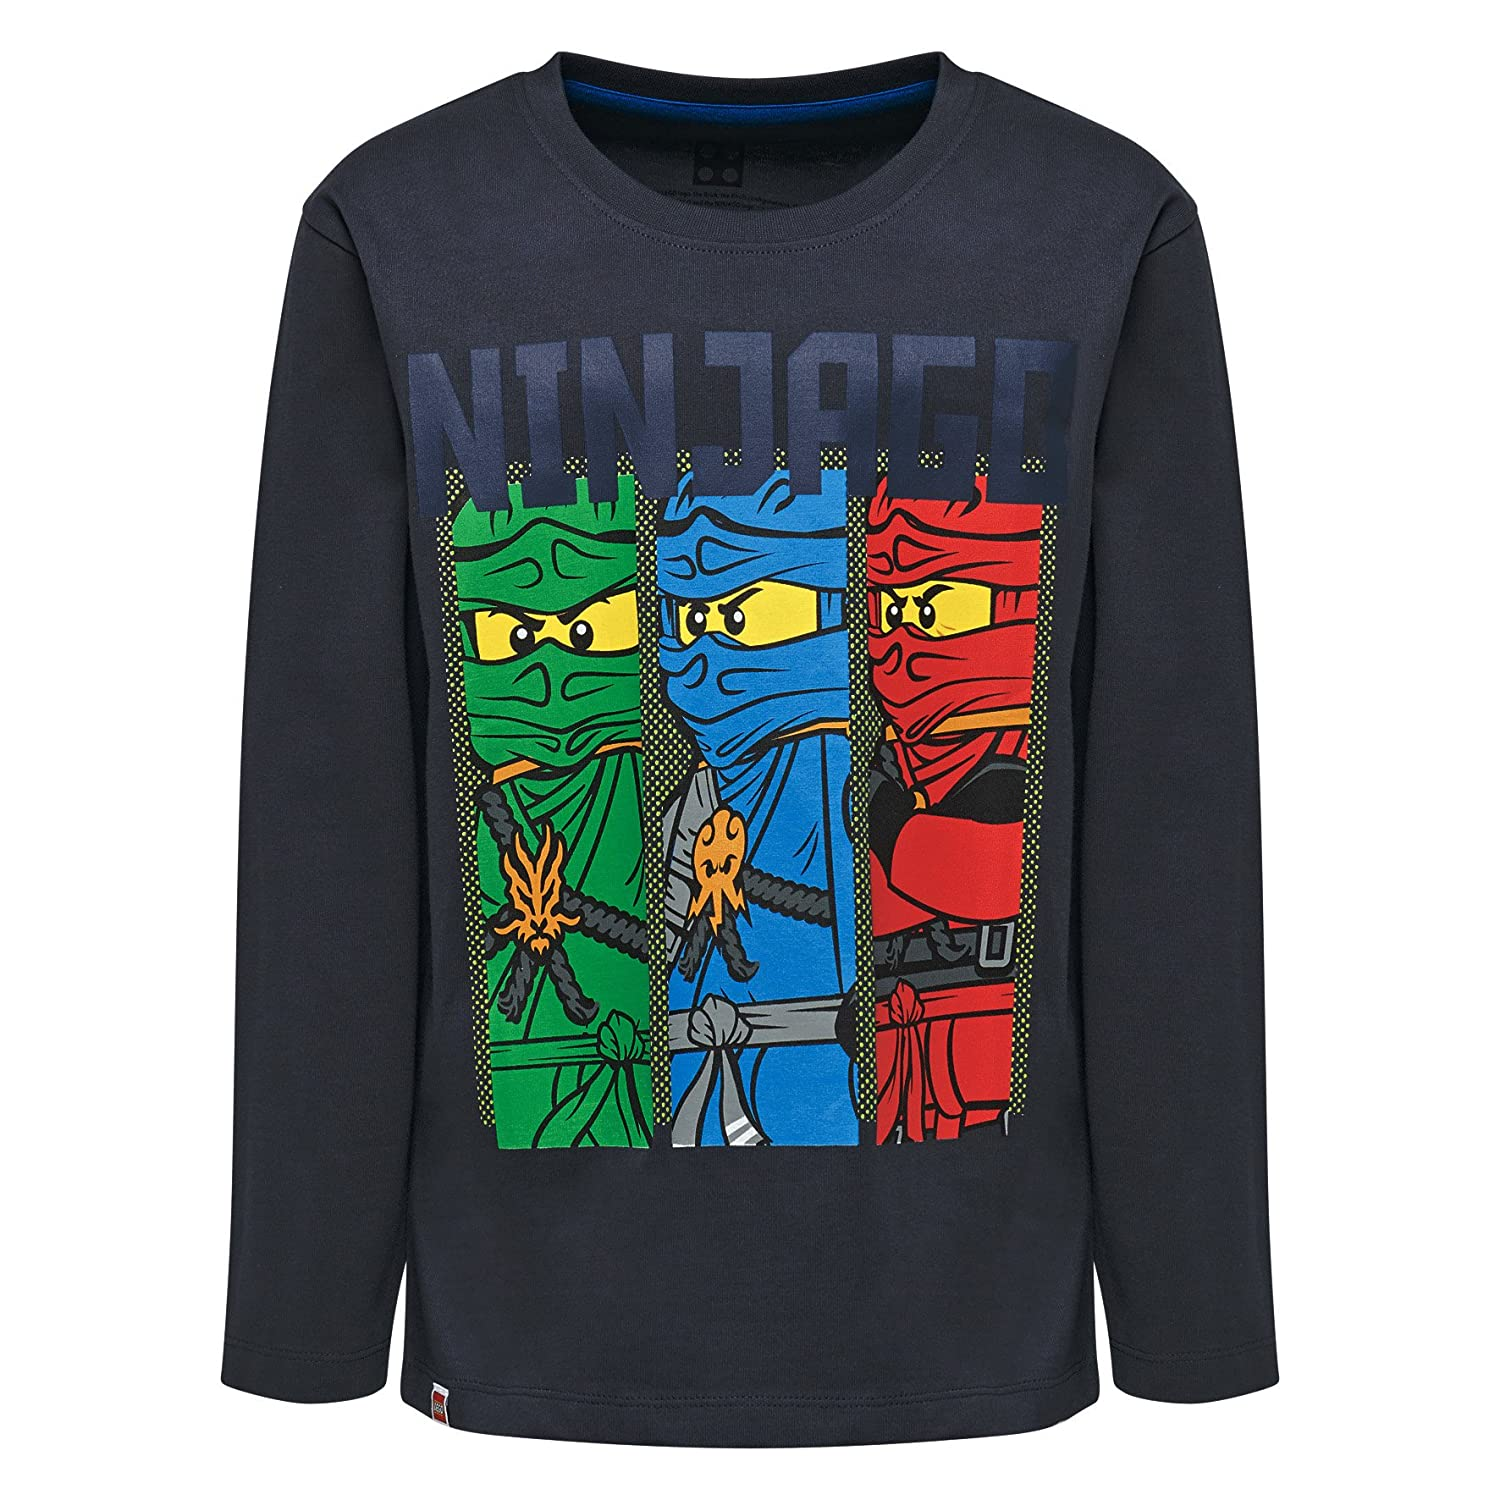 Lego Wear Boy's Longsleeve T-Shirt 20675